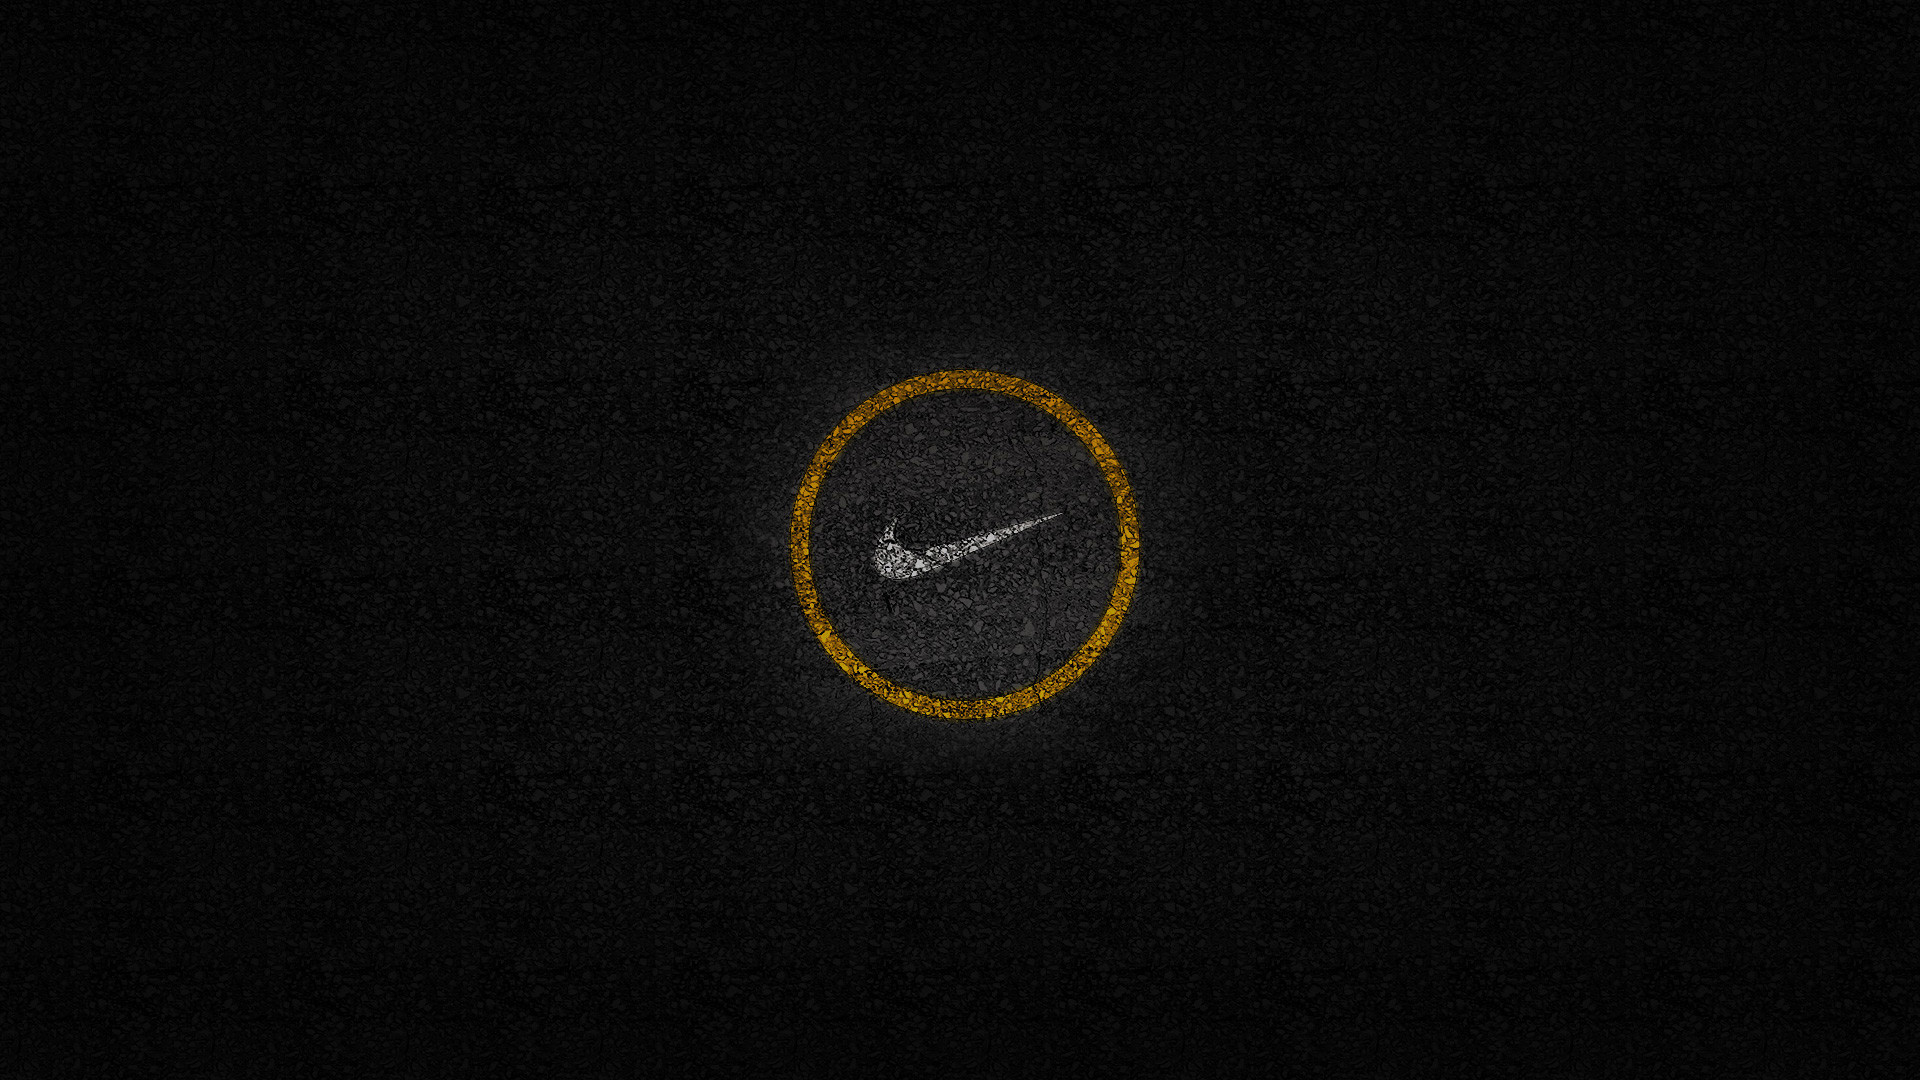 1920x1080 2560x1440 Nike Wallpaper HD